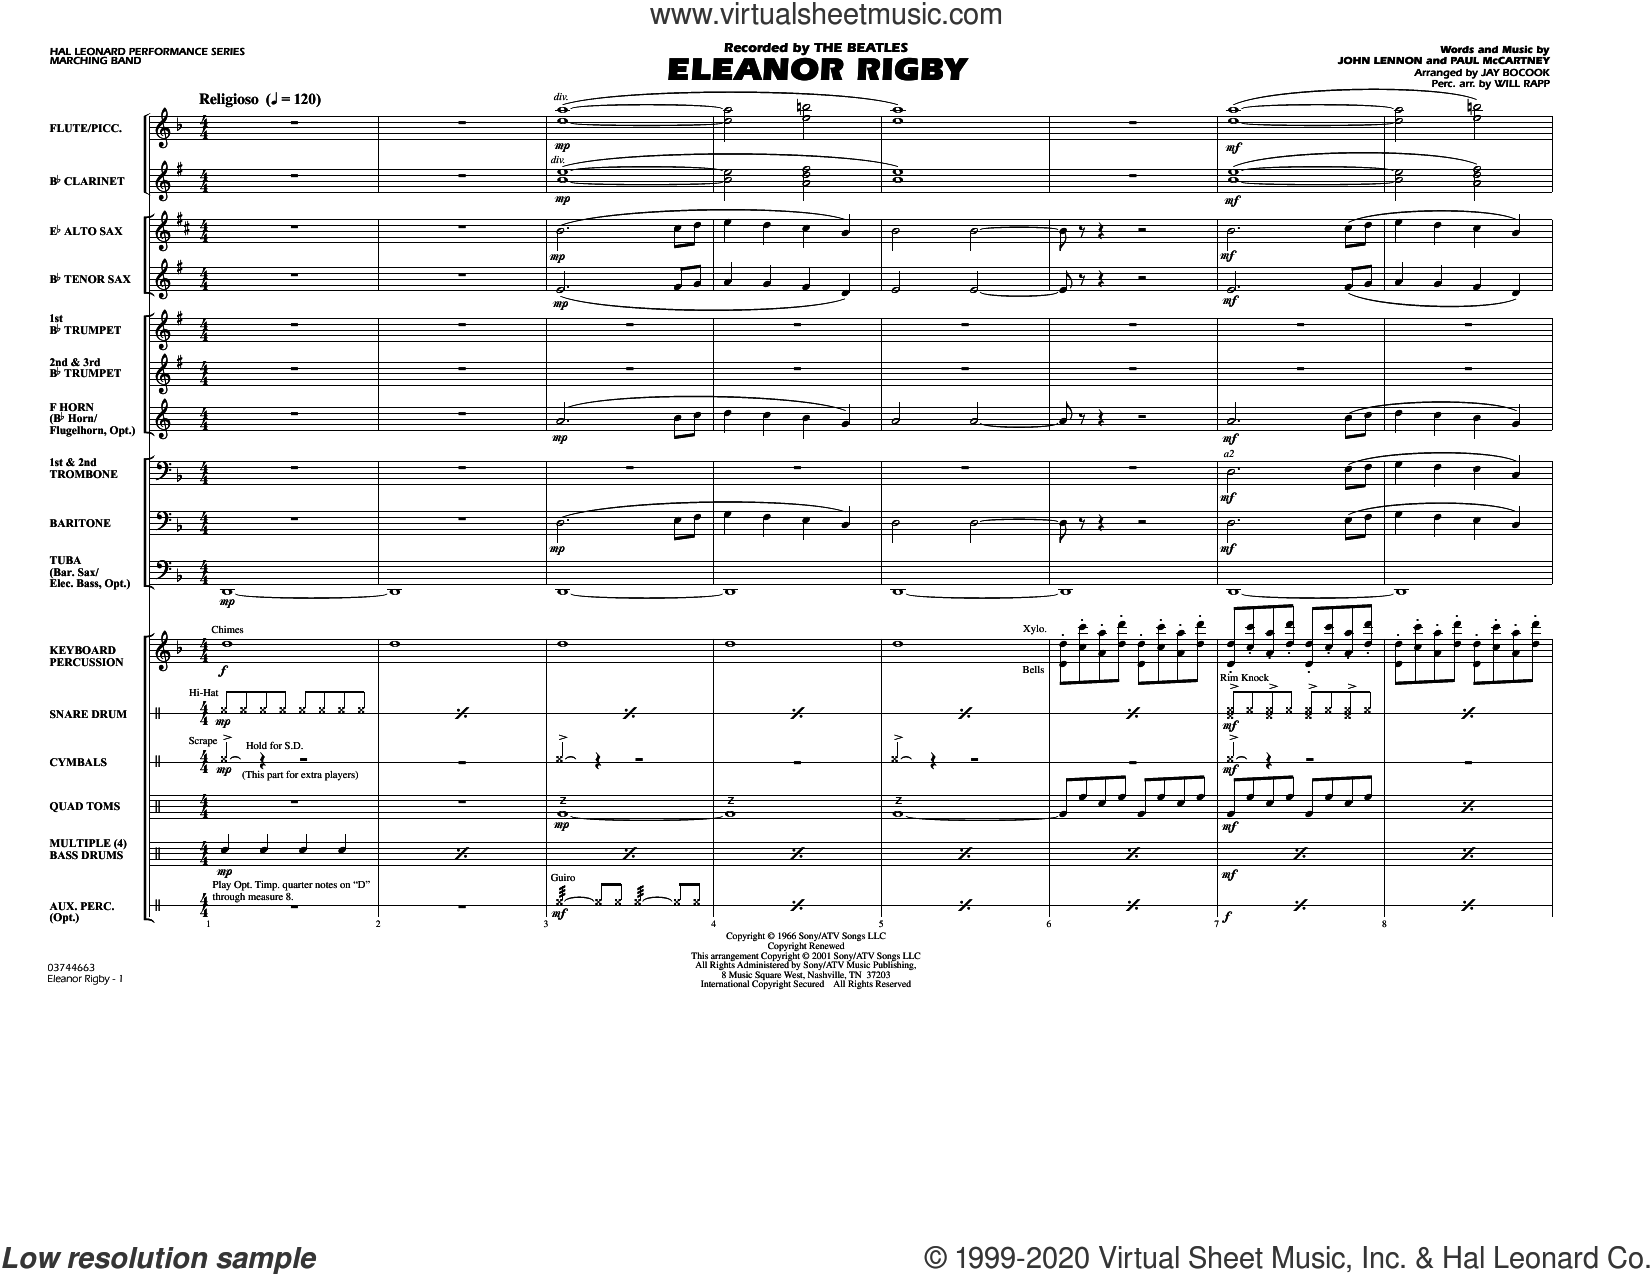 Eleanor Rigby (arr. Jay Bocook) (COMPLETE) sheet music for marching band by The Beatles, Jay Bocook, John Lennon, Paul McCartney and Will Rapp, intermediate skill level